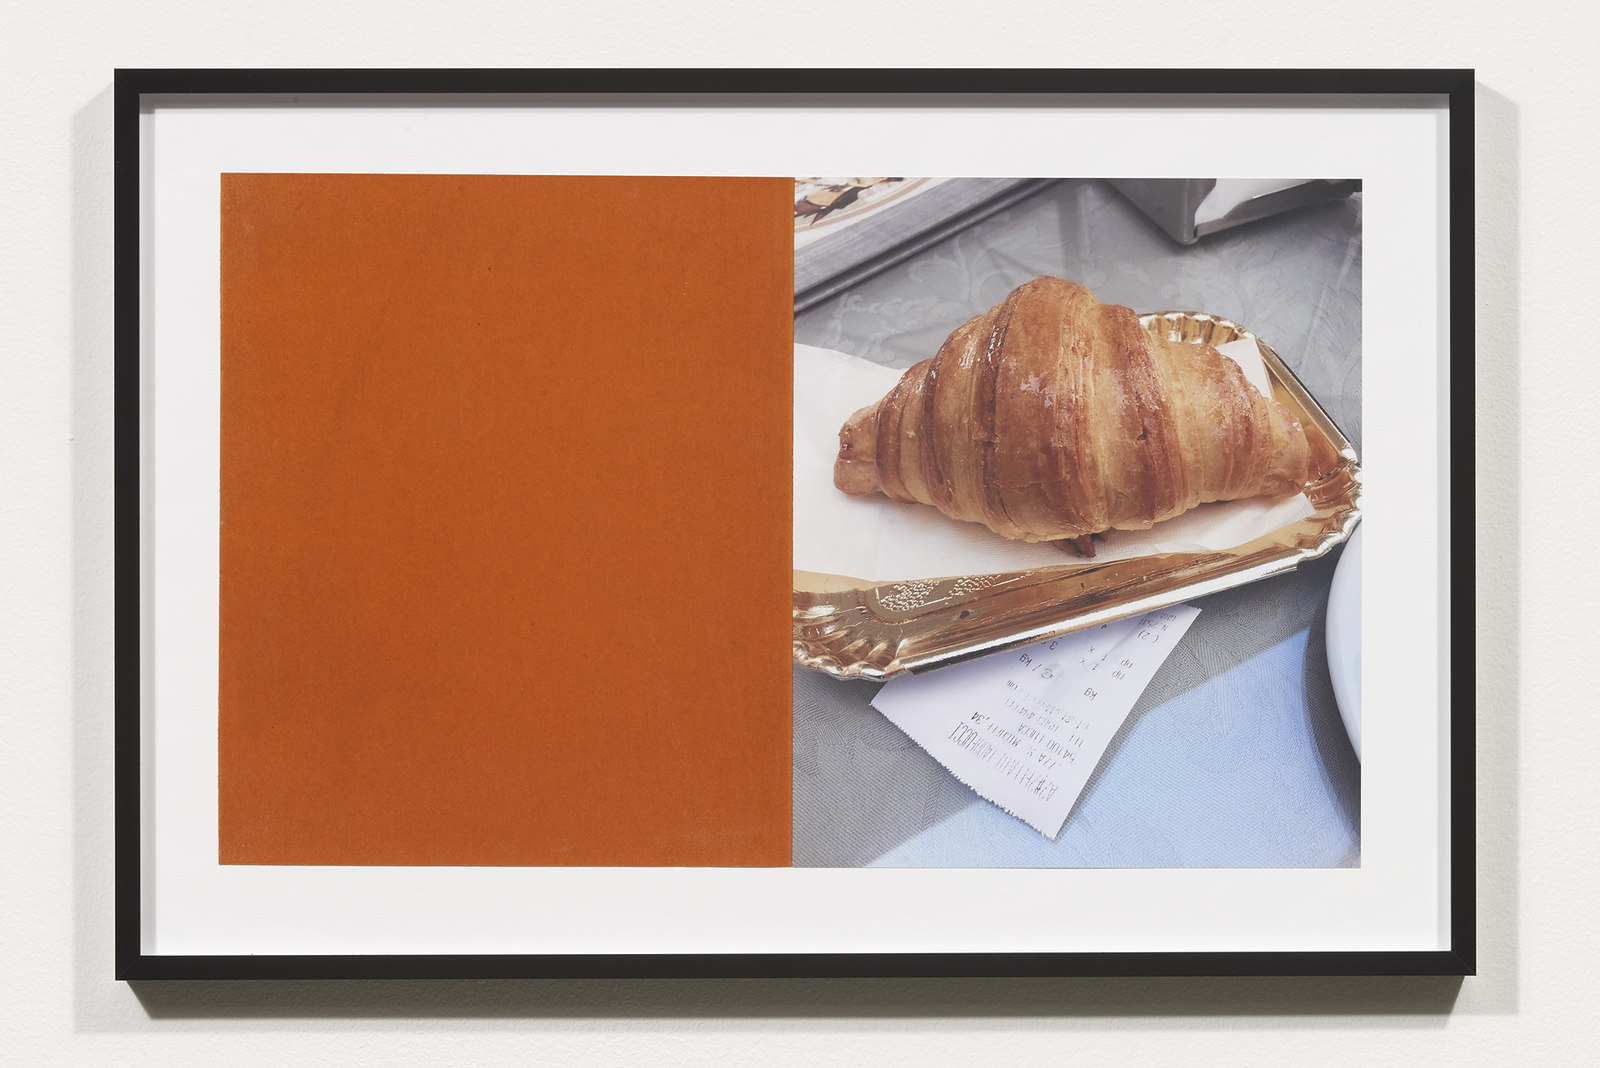 Wermers_Croissants & Architecture #25, 2016_C-print, sandpaper sheet, framed_14 3_8 x 21 1_2 in_NW00066PG